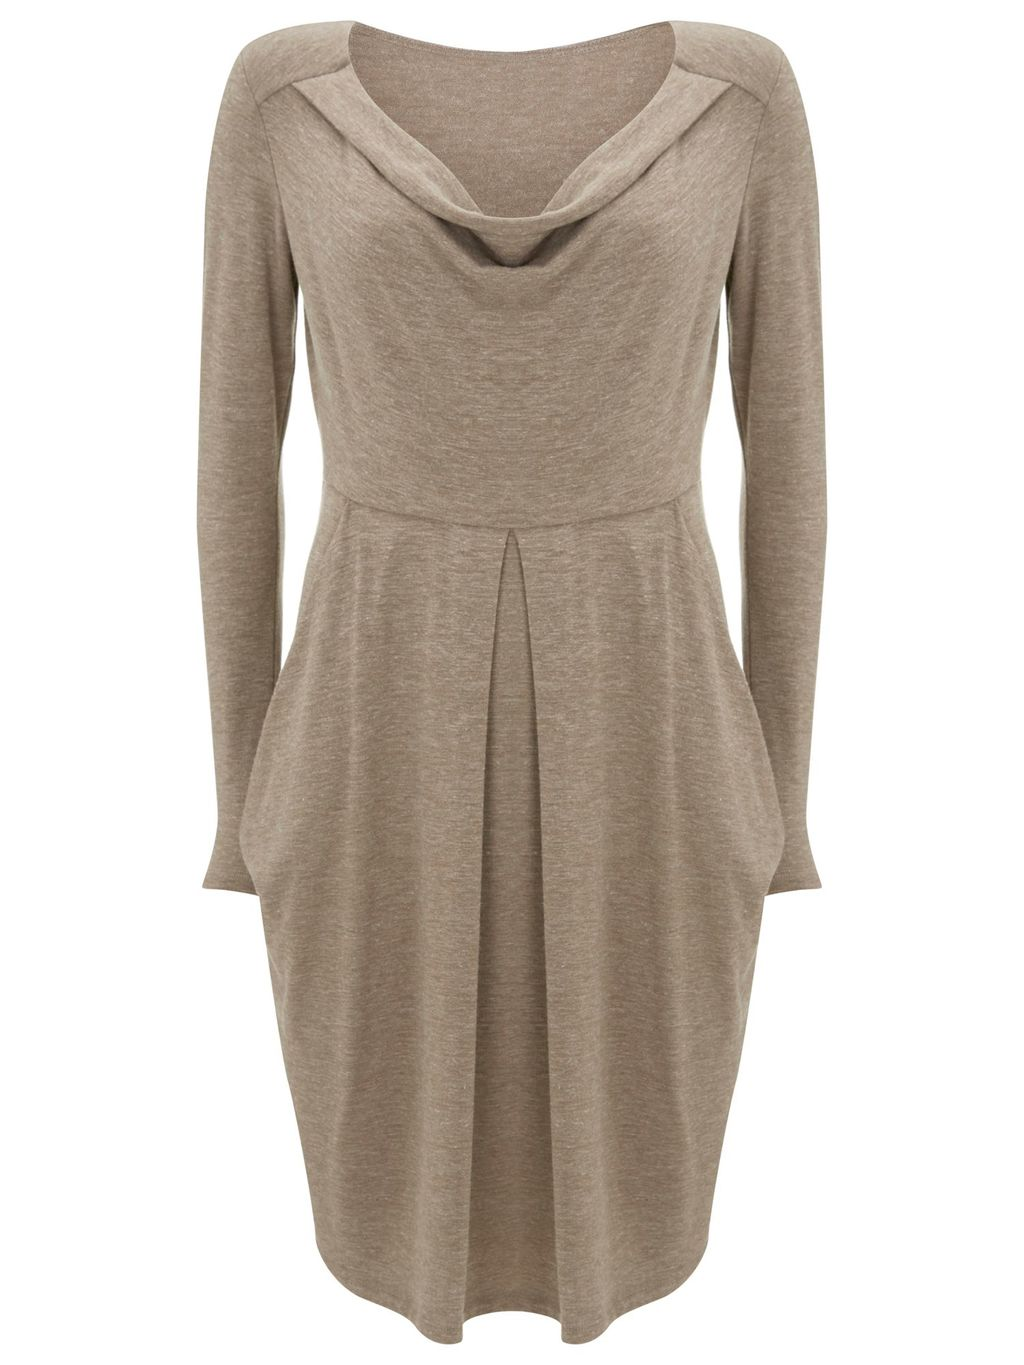 Hoxton Knitted Dress, Beige - style: jumper dress; neckline: cowl/draped neck; pattern: plain; predominant colour: stone; occasions: casual; length: just above the knee; fit: body skimming; fibres: polyester/polyamide - stretch; hip detail: structured pleats at hip; sleeve length: long sleeve; sleeve style: standard; pattern type: fabric; texture group: jersey - stretchy/drapey; season: s/s 2016; wardrobe: basic